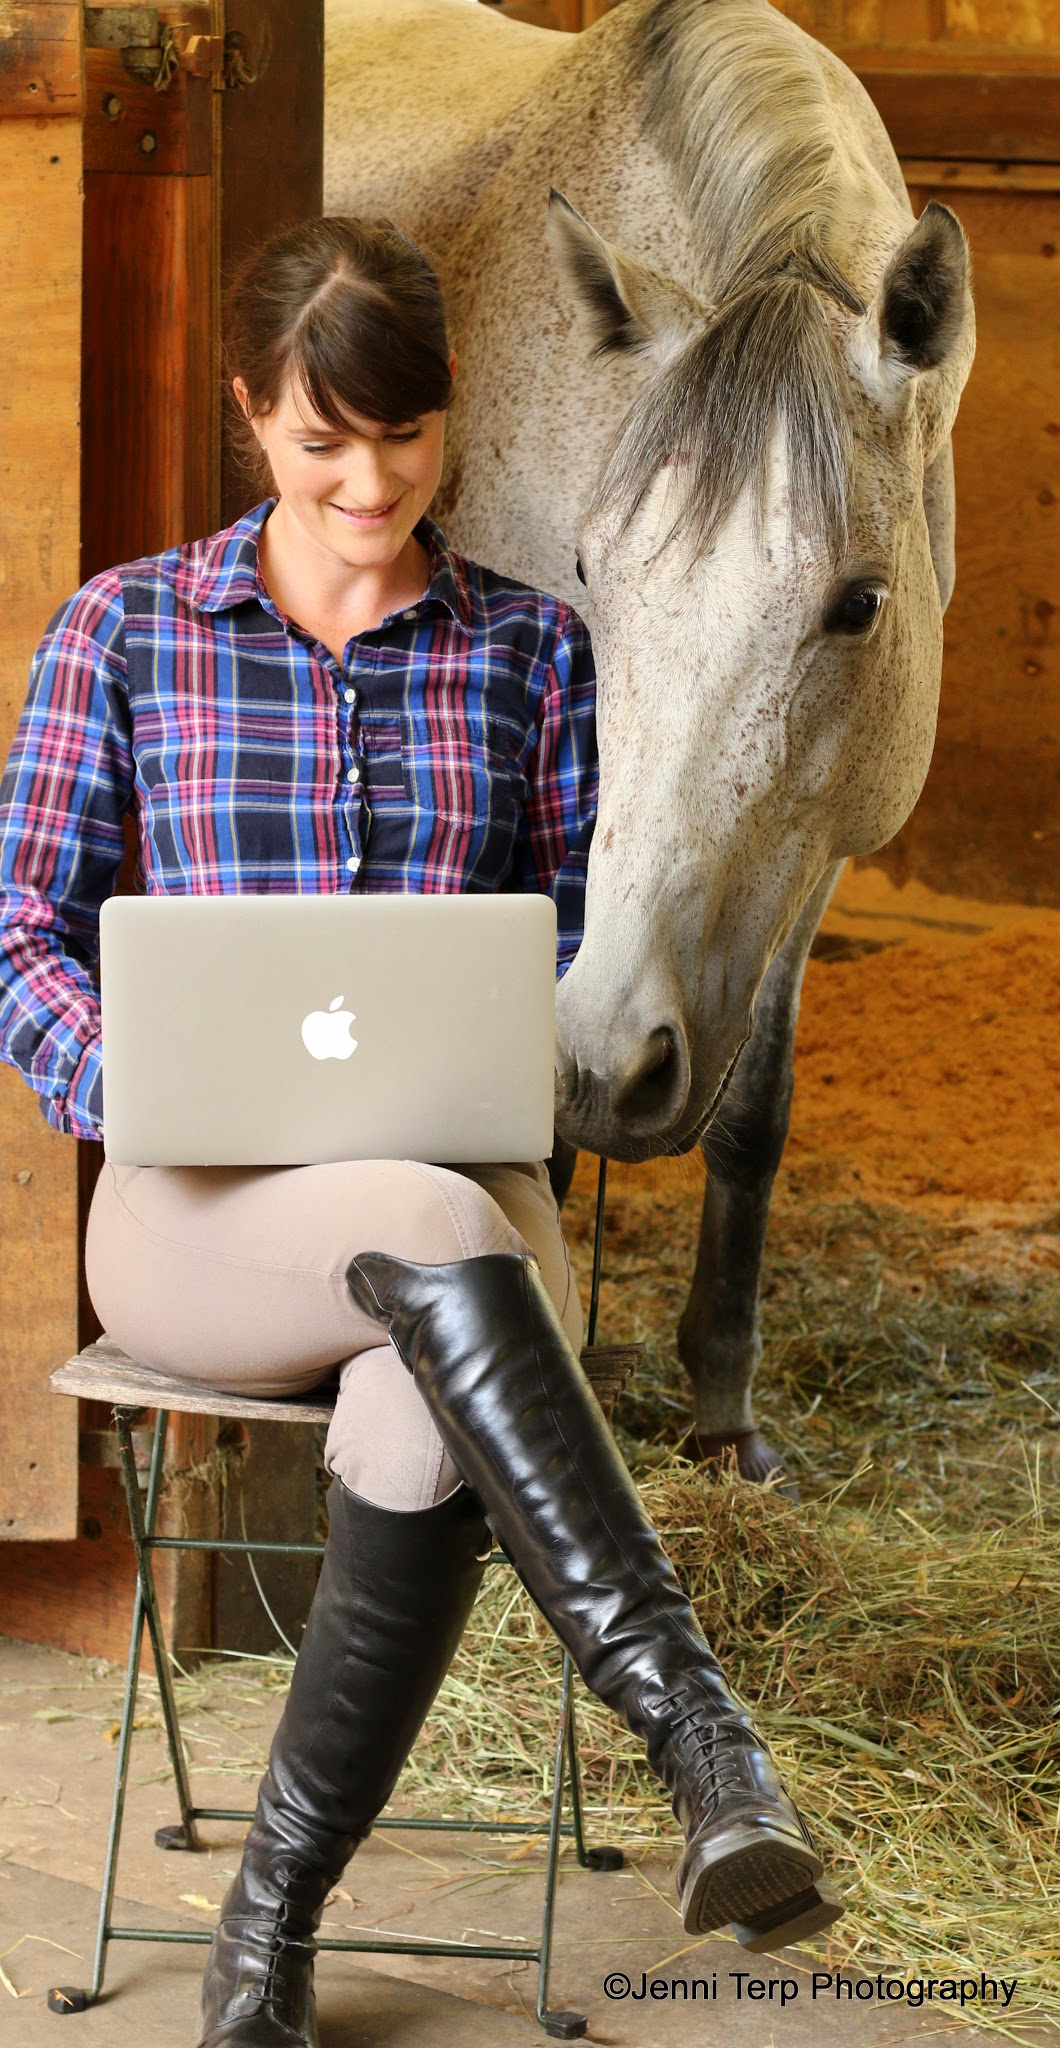 Yay! Even your horse will thank you… Streamline your horse business for more time, $, freedom AND best of all, more time with your own horse! Cadence Inc specializes in helping horse industry pros make their businesses WORK. Choose a customized, one on one program or an expertly facilitated online program- contact jen@cadence-coach.com. Check out stirrupyourbizbootcamp.com. Can't wait!